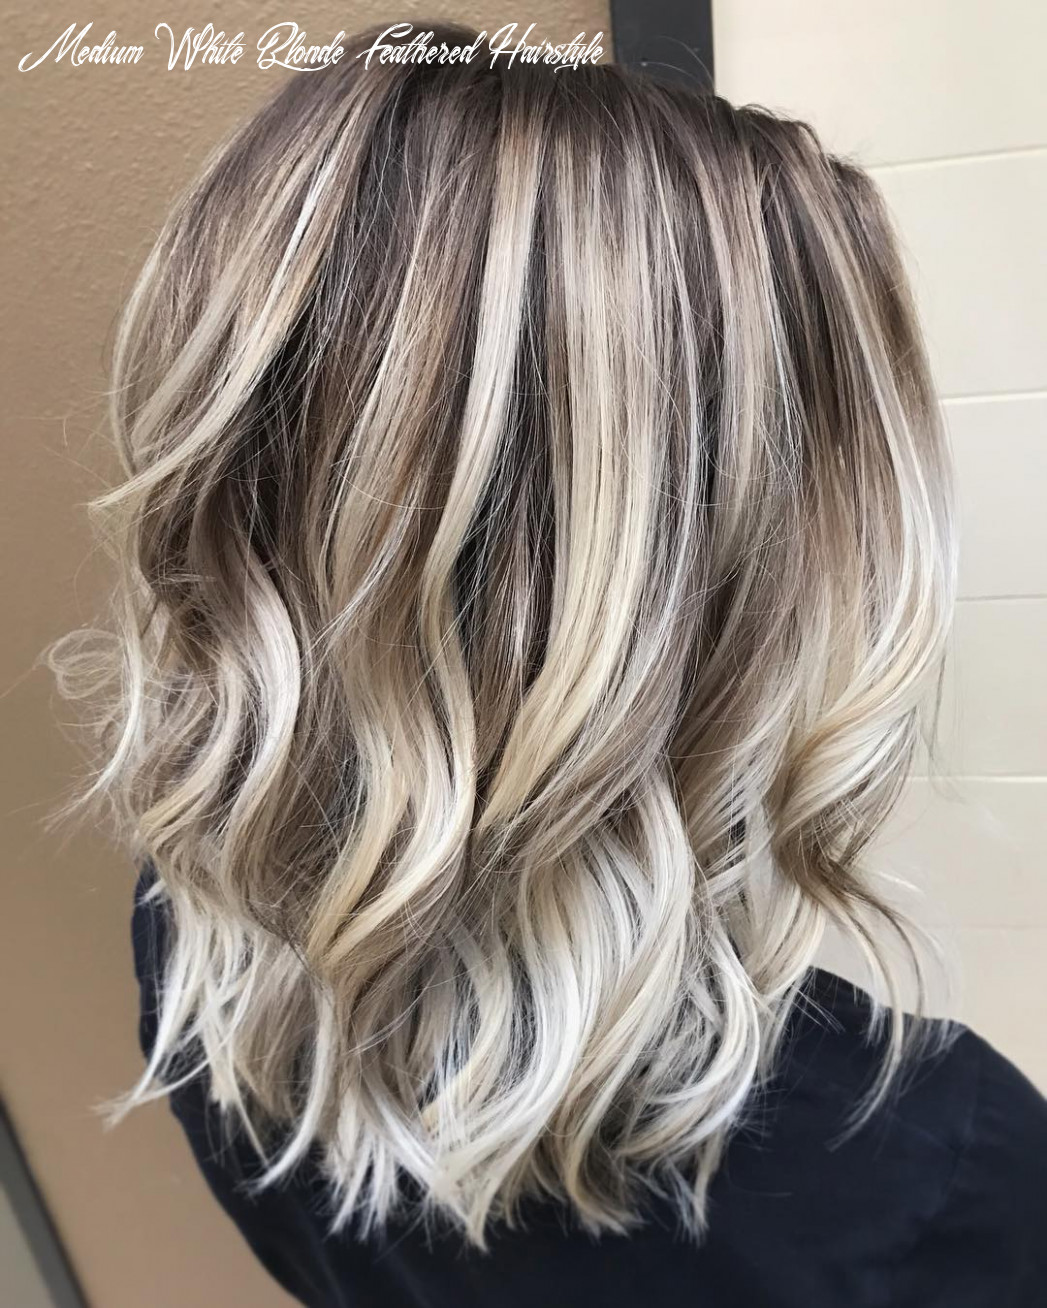 Hair cut style for women 9 medium white blonde feathered hairstyle